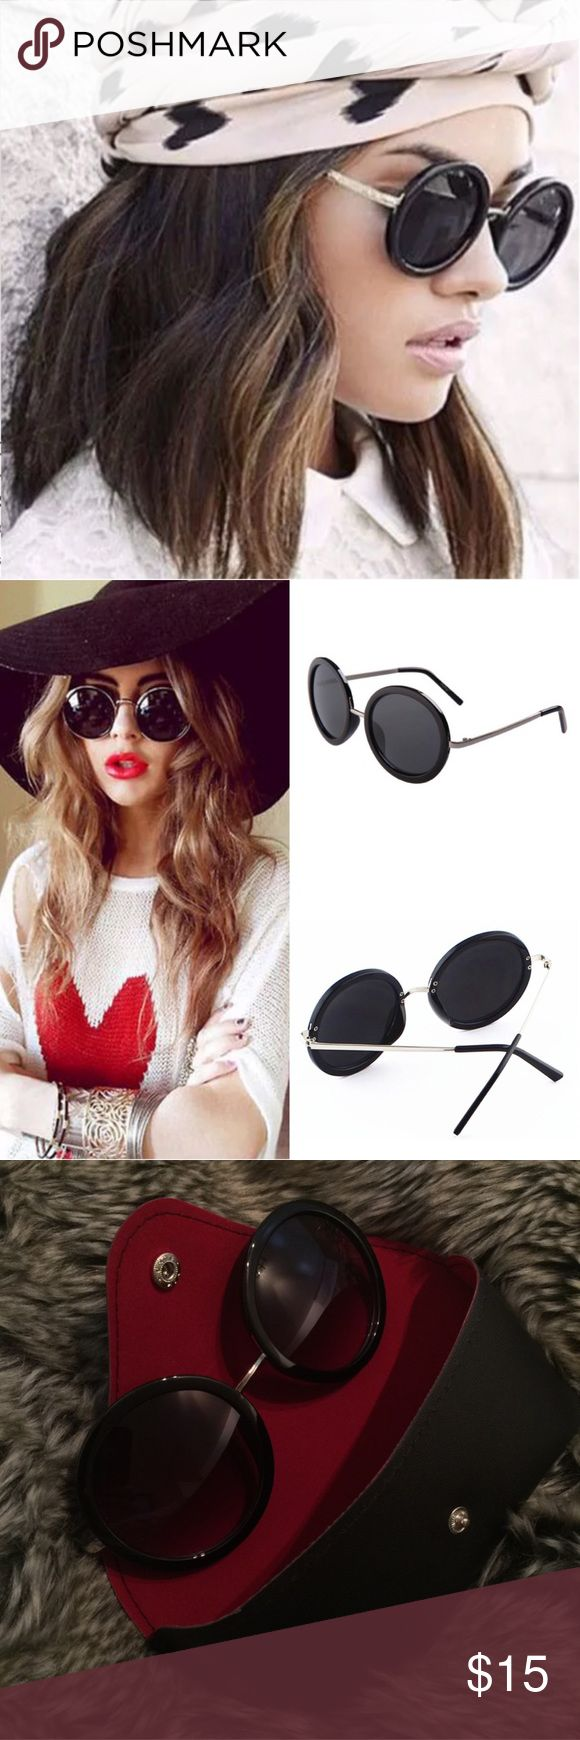 NEW Round Black Sunglasses Size: One Size Frame Color: Black Lens Color: Black  Comes with its own case for storage   Price is firm unless bundled Accessories Sunglasses